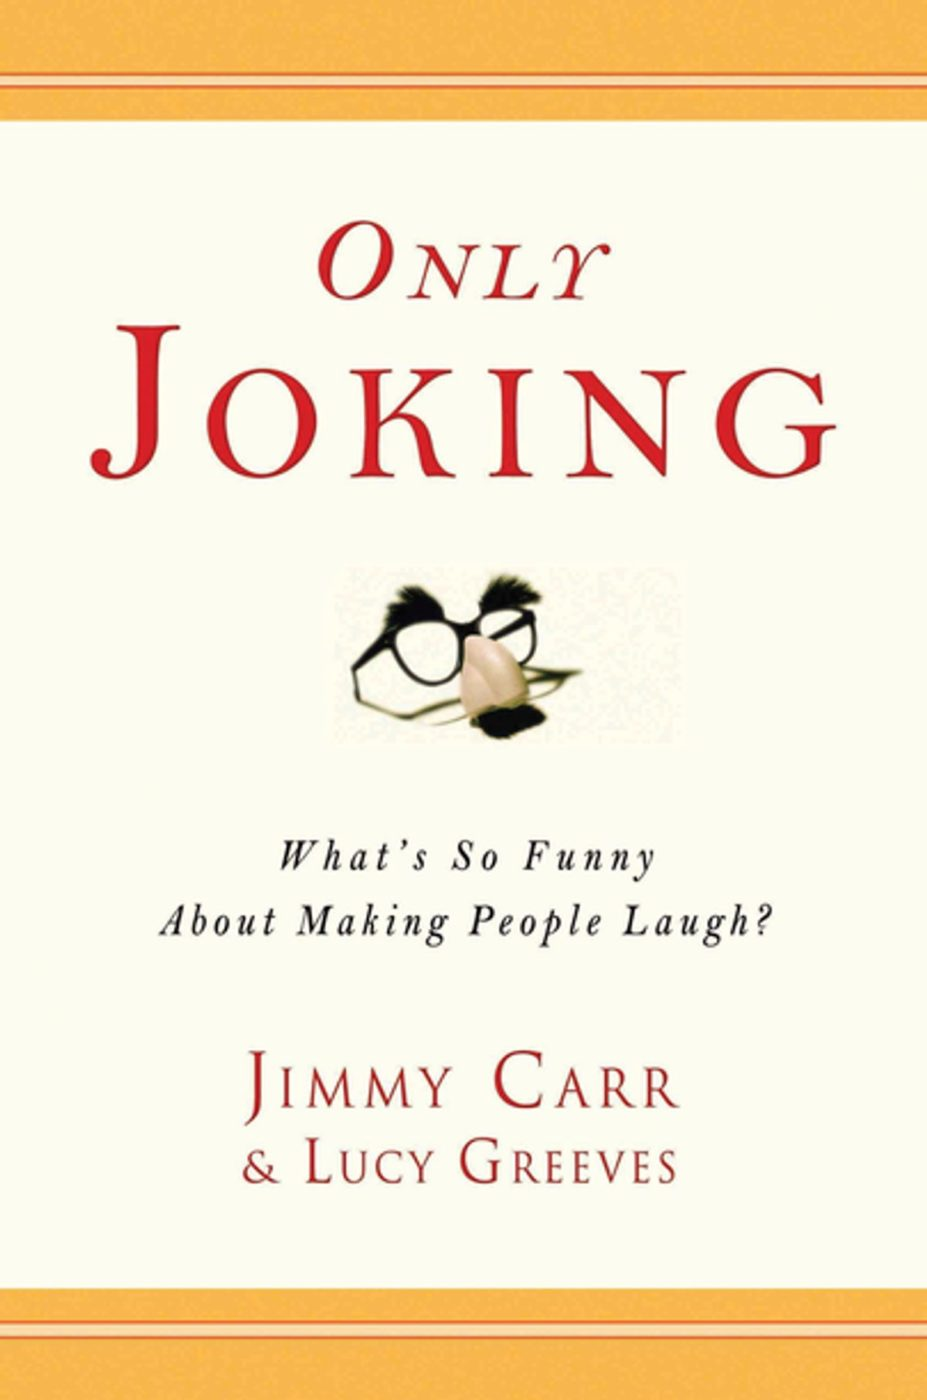 Only Joking  by Jimmy Carr and Lucy Greeves Book cover